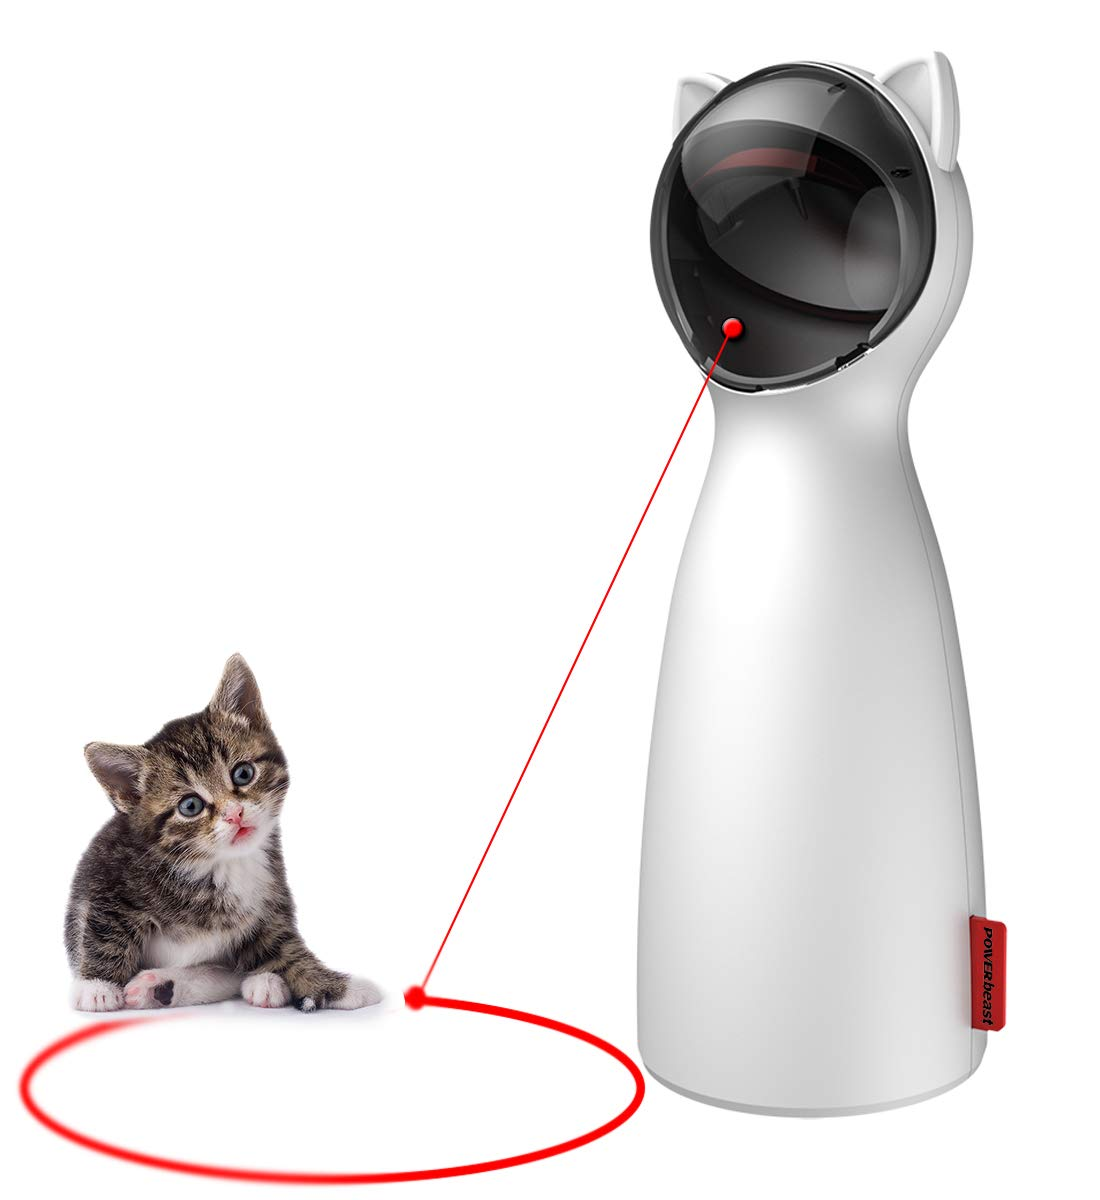 POWERbeast Laser Cat Toys Interactive - Pet Laser Pointer for Cats/Dogs with Automatic Rotating,Auto Shutdown/Startup for Catch and Training,5 Adjustable Rotating Height/Range,Cat Exercise Toys by POWERbeast